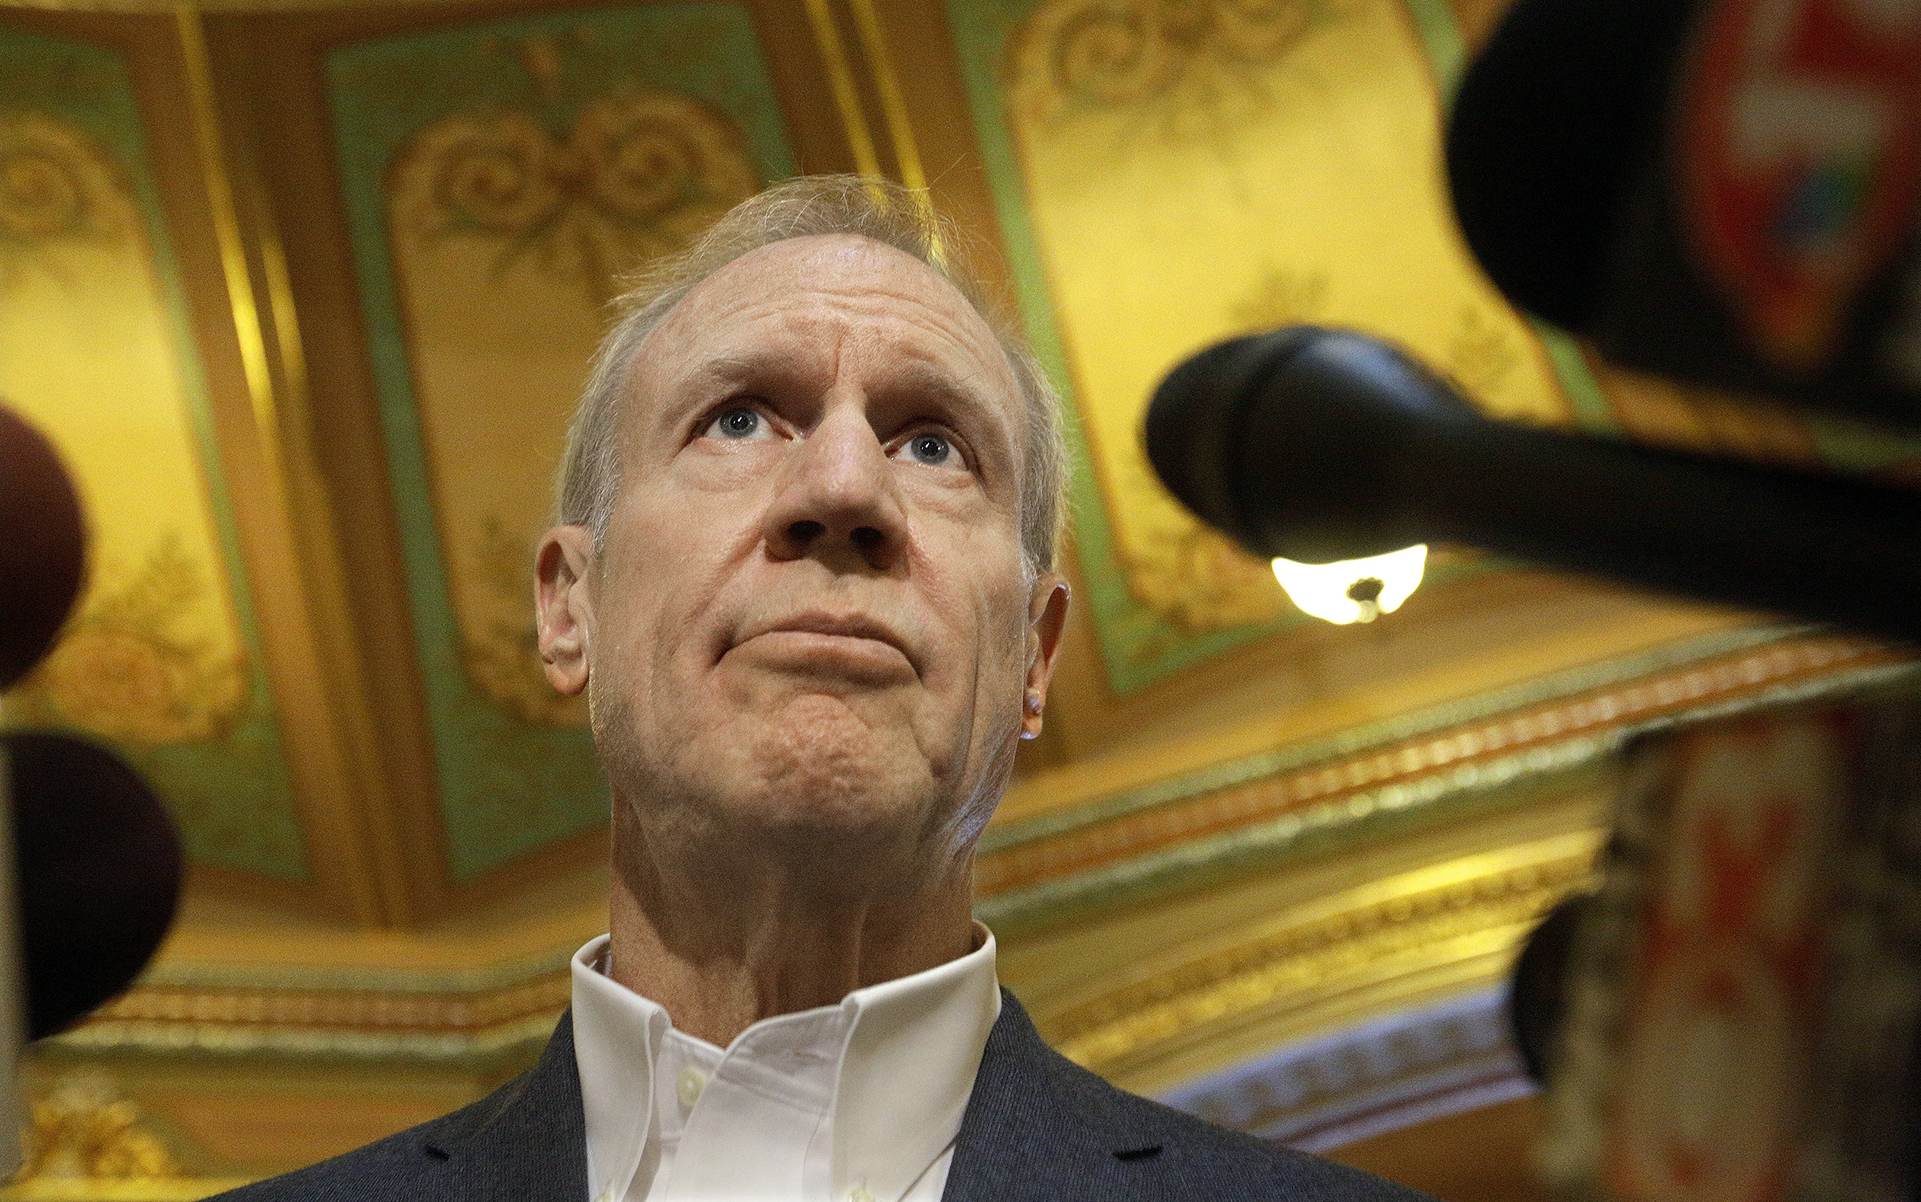 Illinois Gov. Rauner Ignores MMJ Pleas, So Local Judge Takes Charge